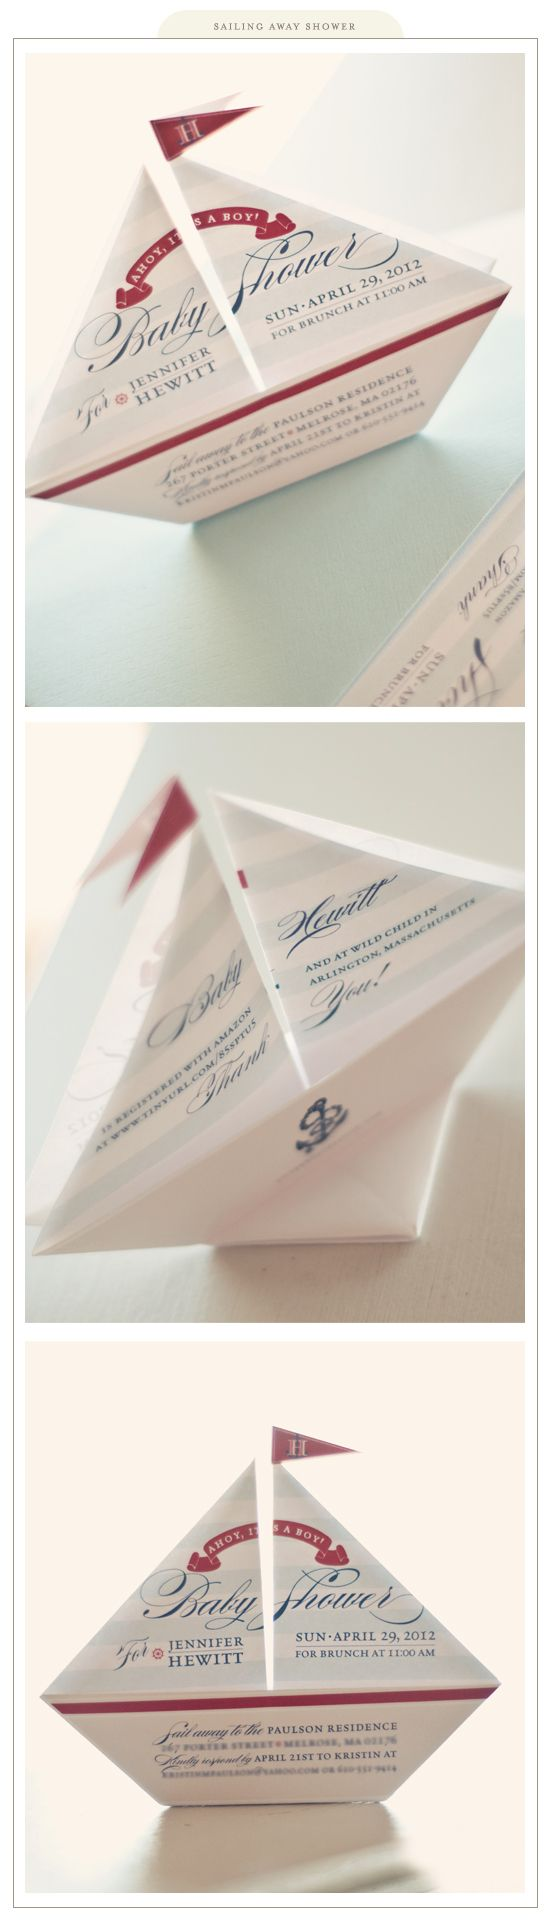 62 INVITACIONES BABY SHOWER ORIGAMI